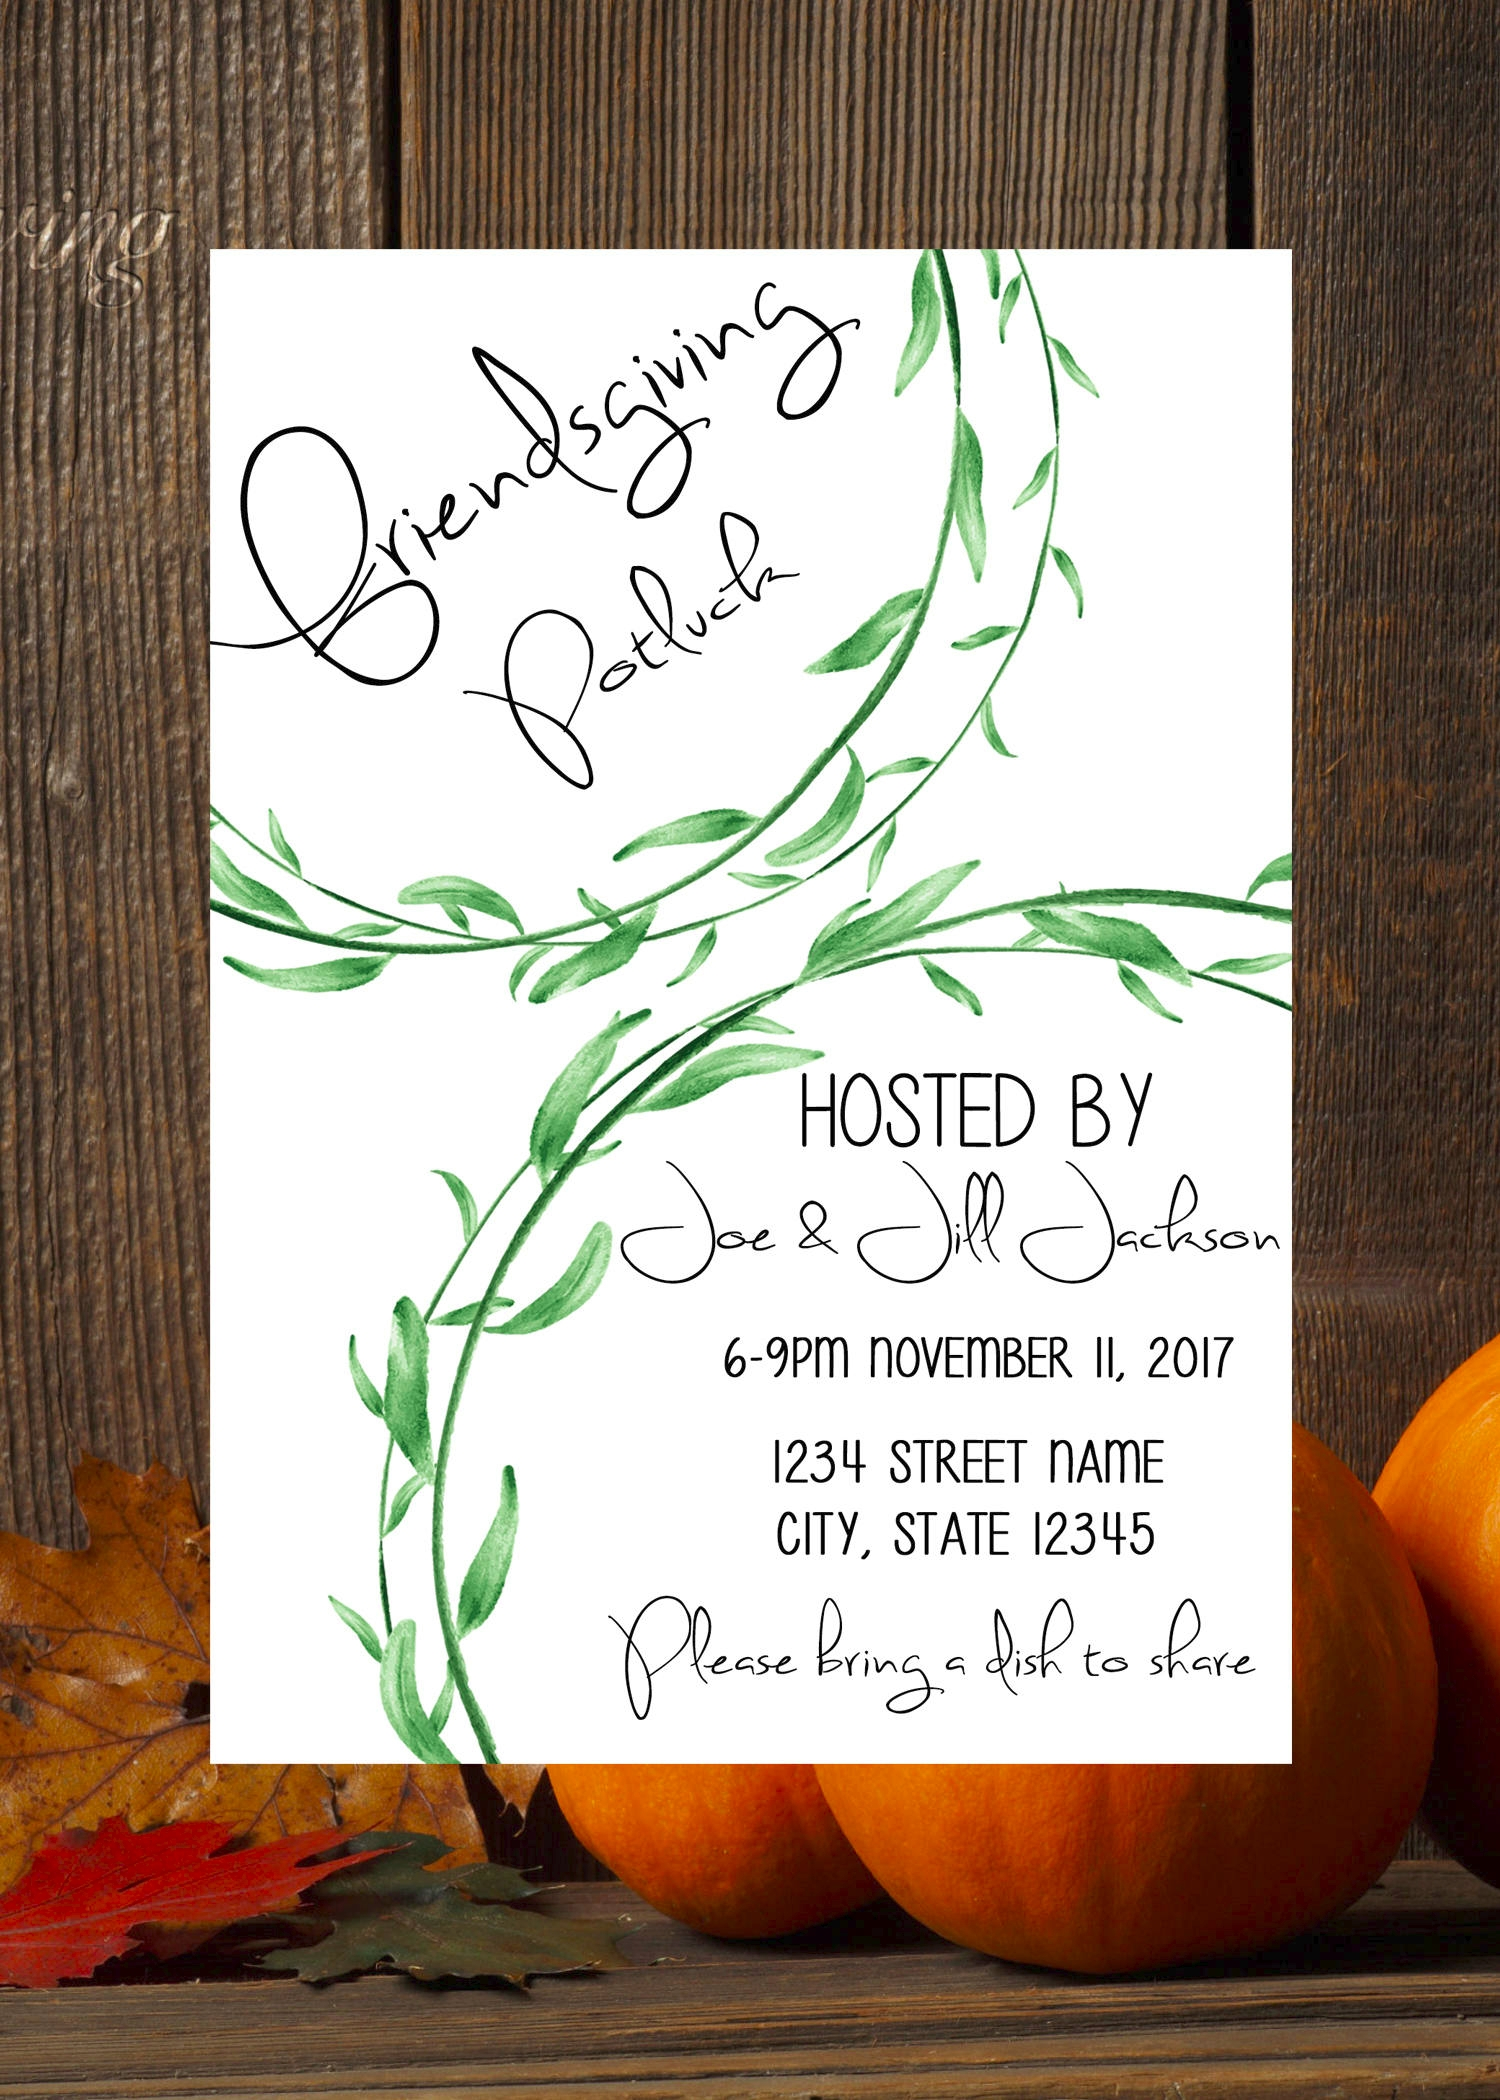 friendsgiving potluck digital invitation